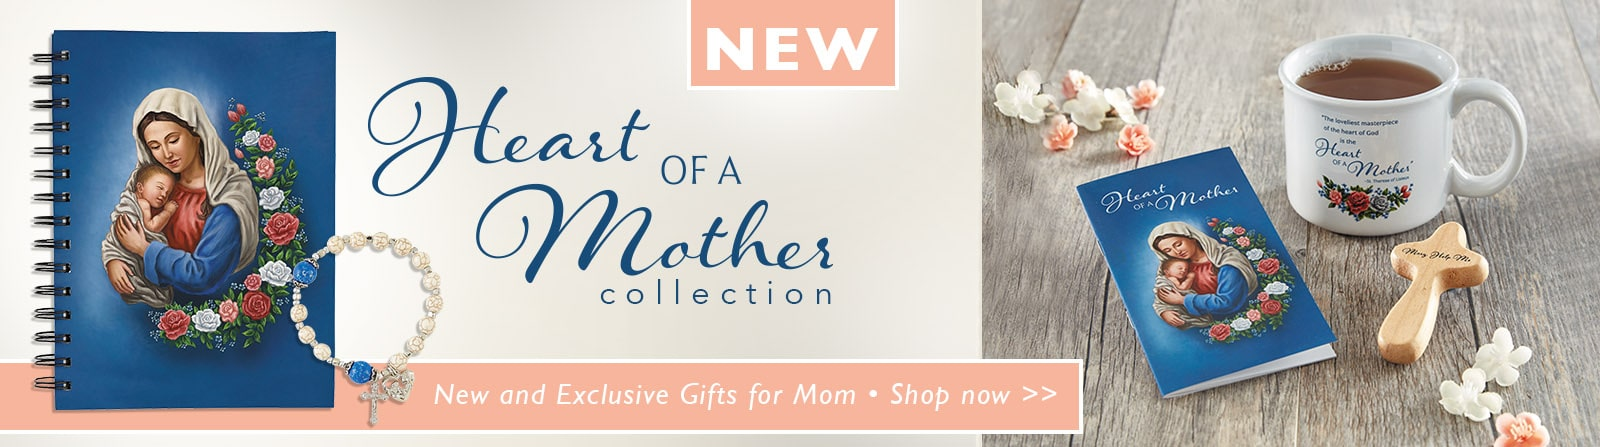 New Heart of a Mother Collection